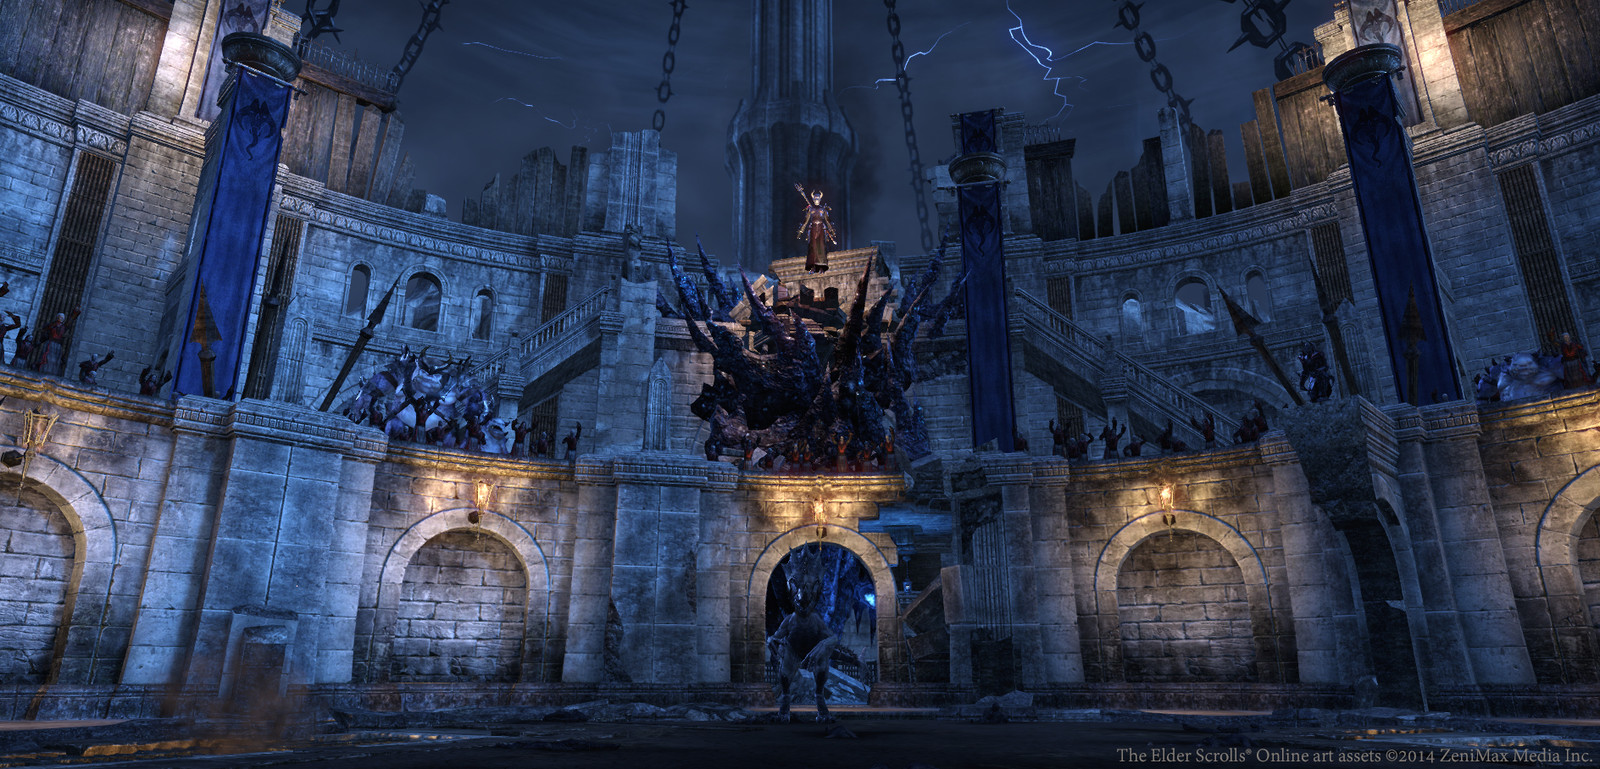 Imperial City arena (angle #1). Architecture by me. Characters, lights, and background by others.